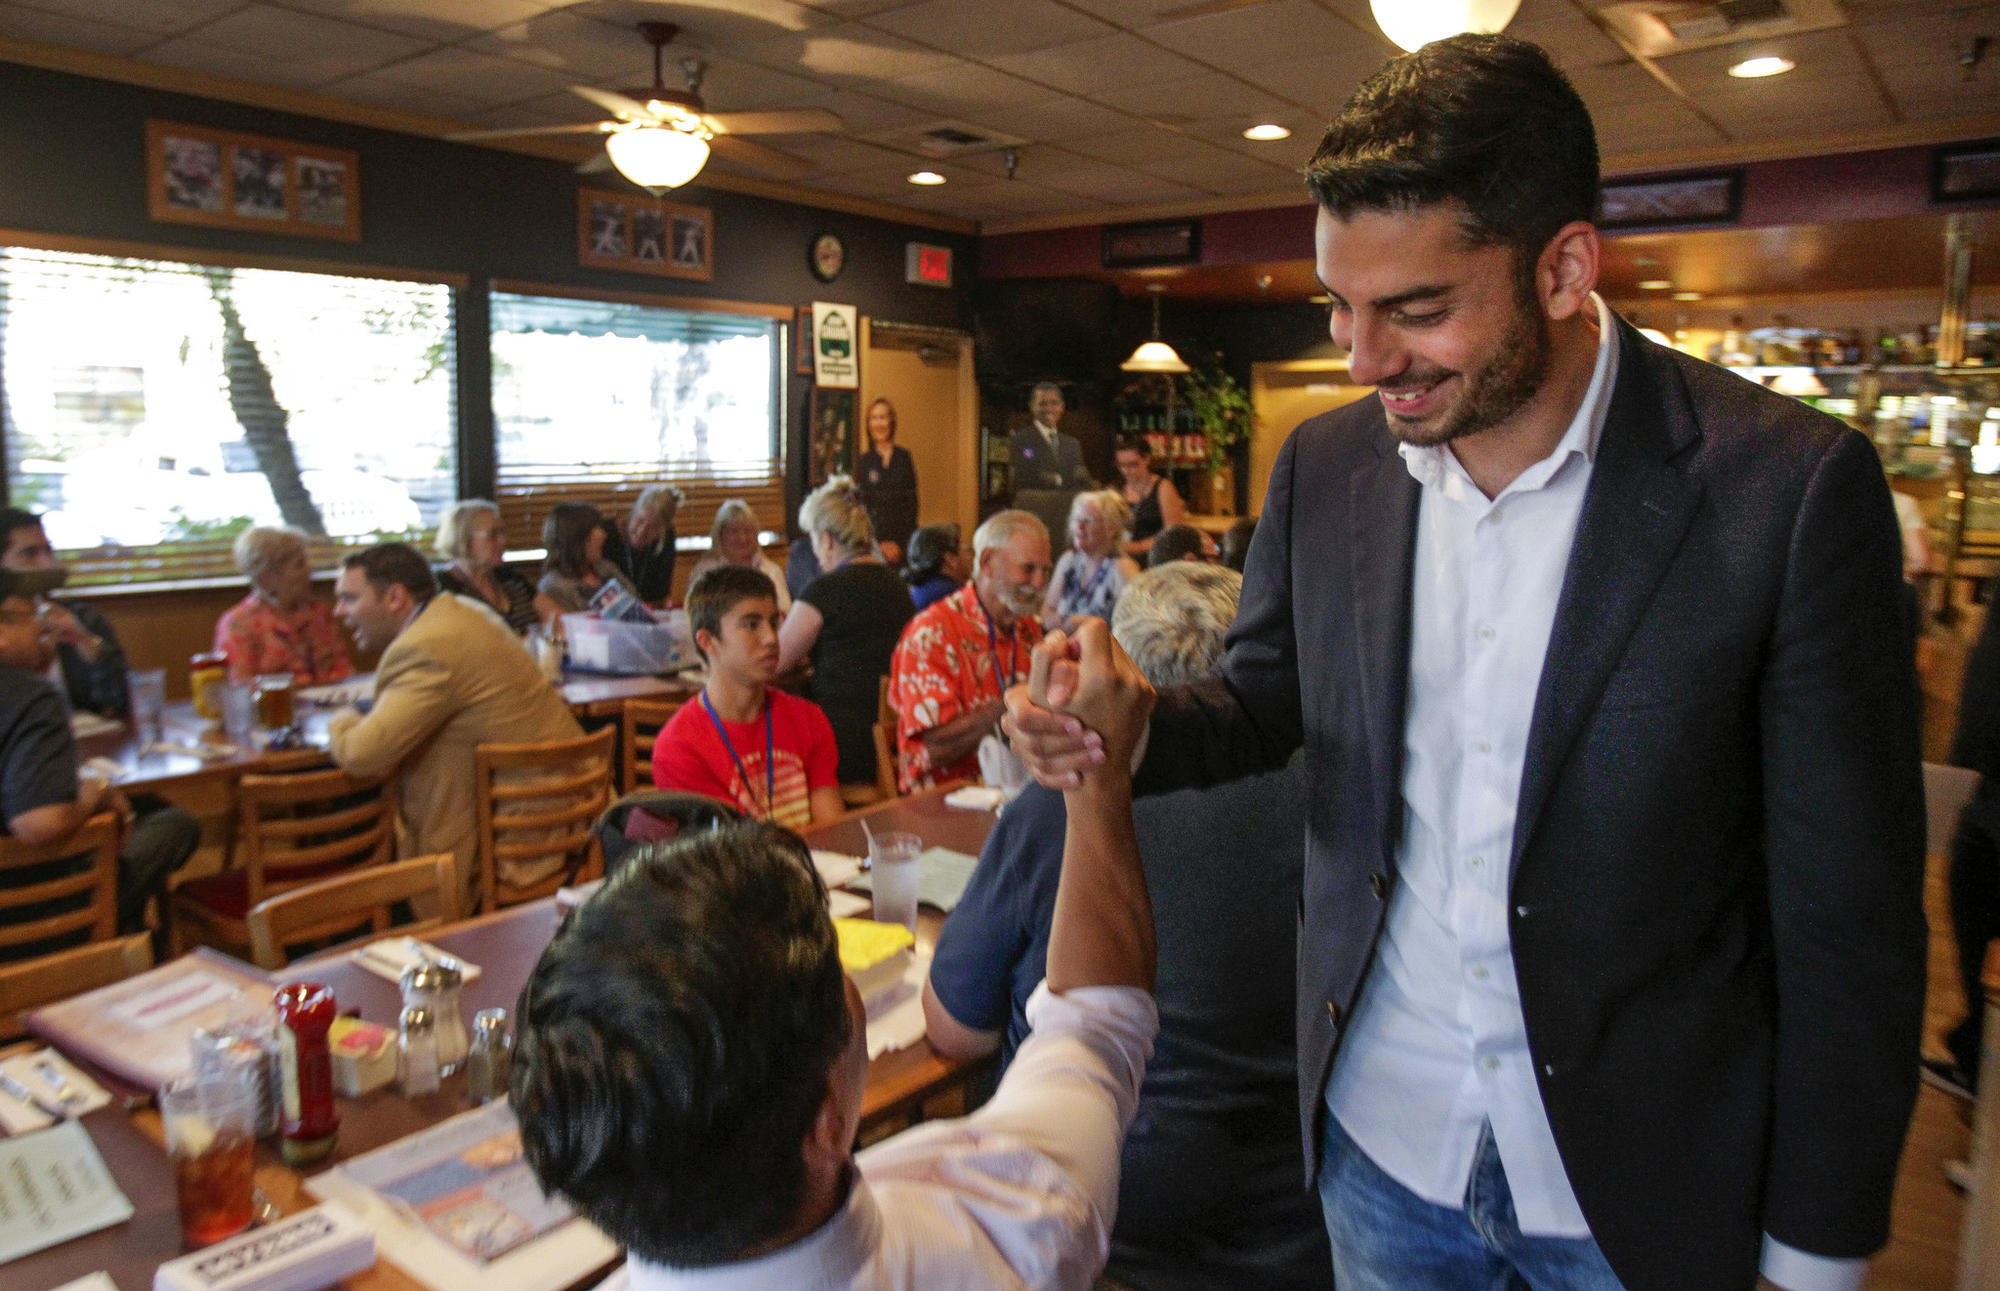 SANTEE, August 17, 2017 | Ammar Campa-Najjar, 28, a candidate for 50th congressional district, shake